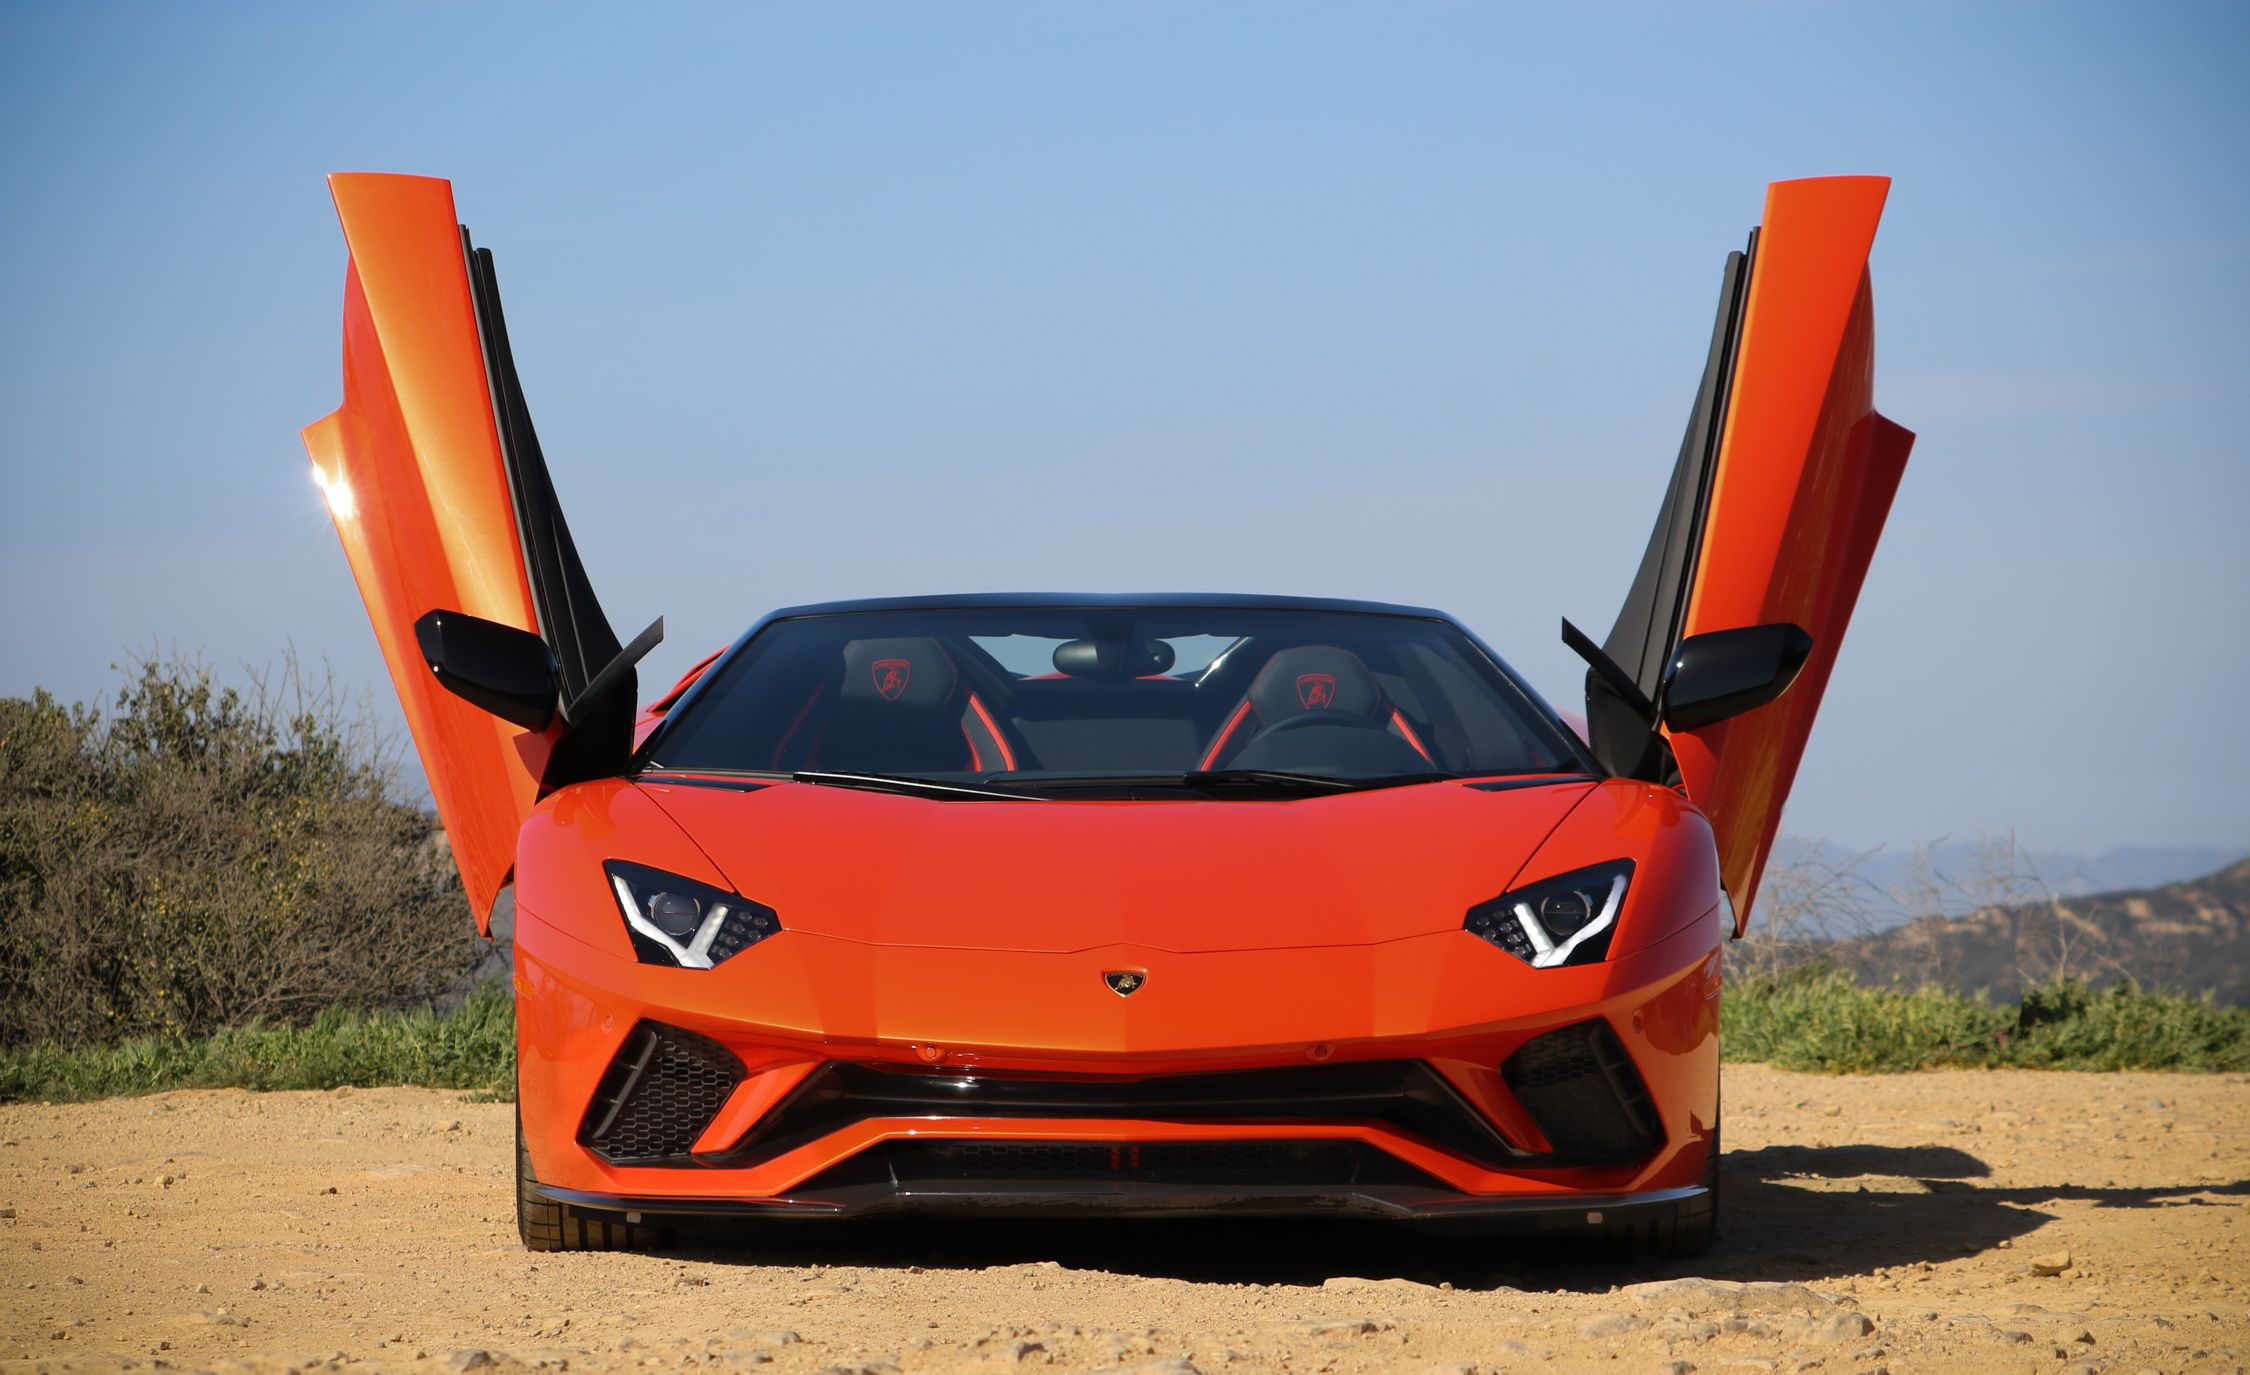 2018 Lamborghini Aventador S Roadster Doors Up Detail Wallpapers (2)